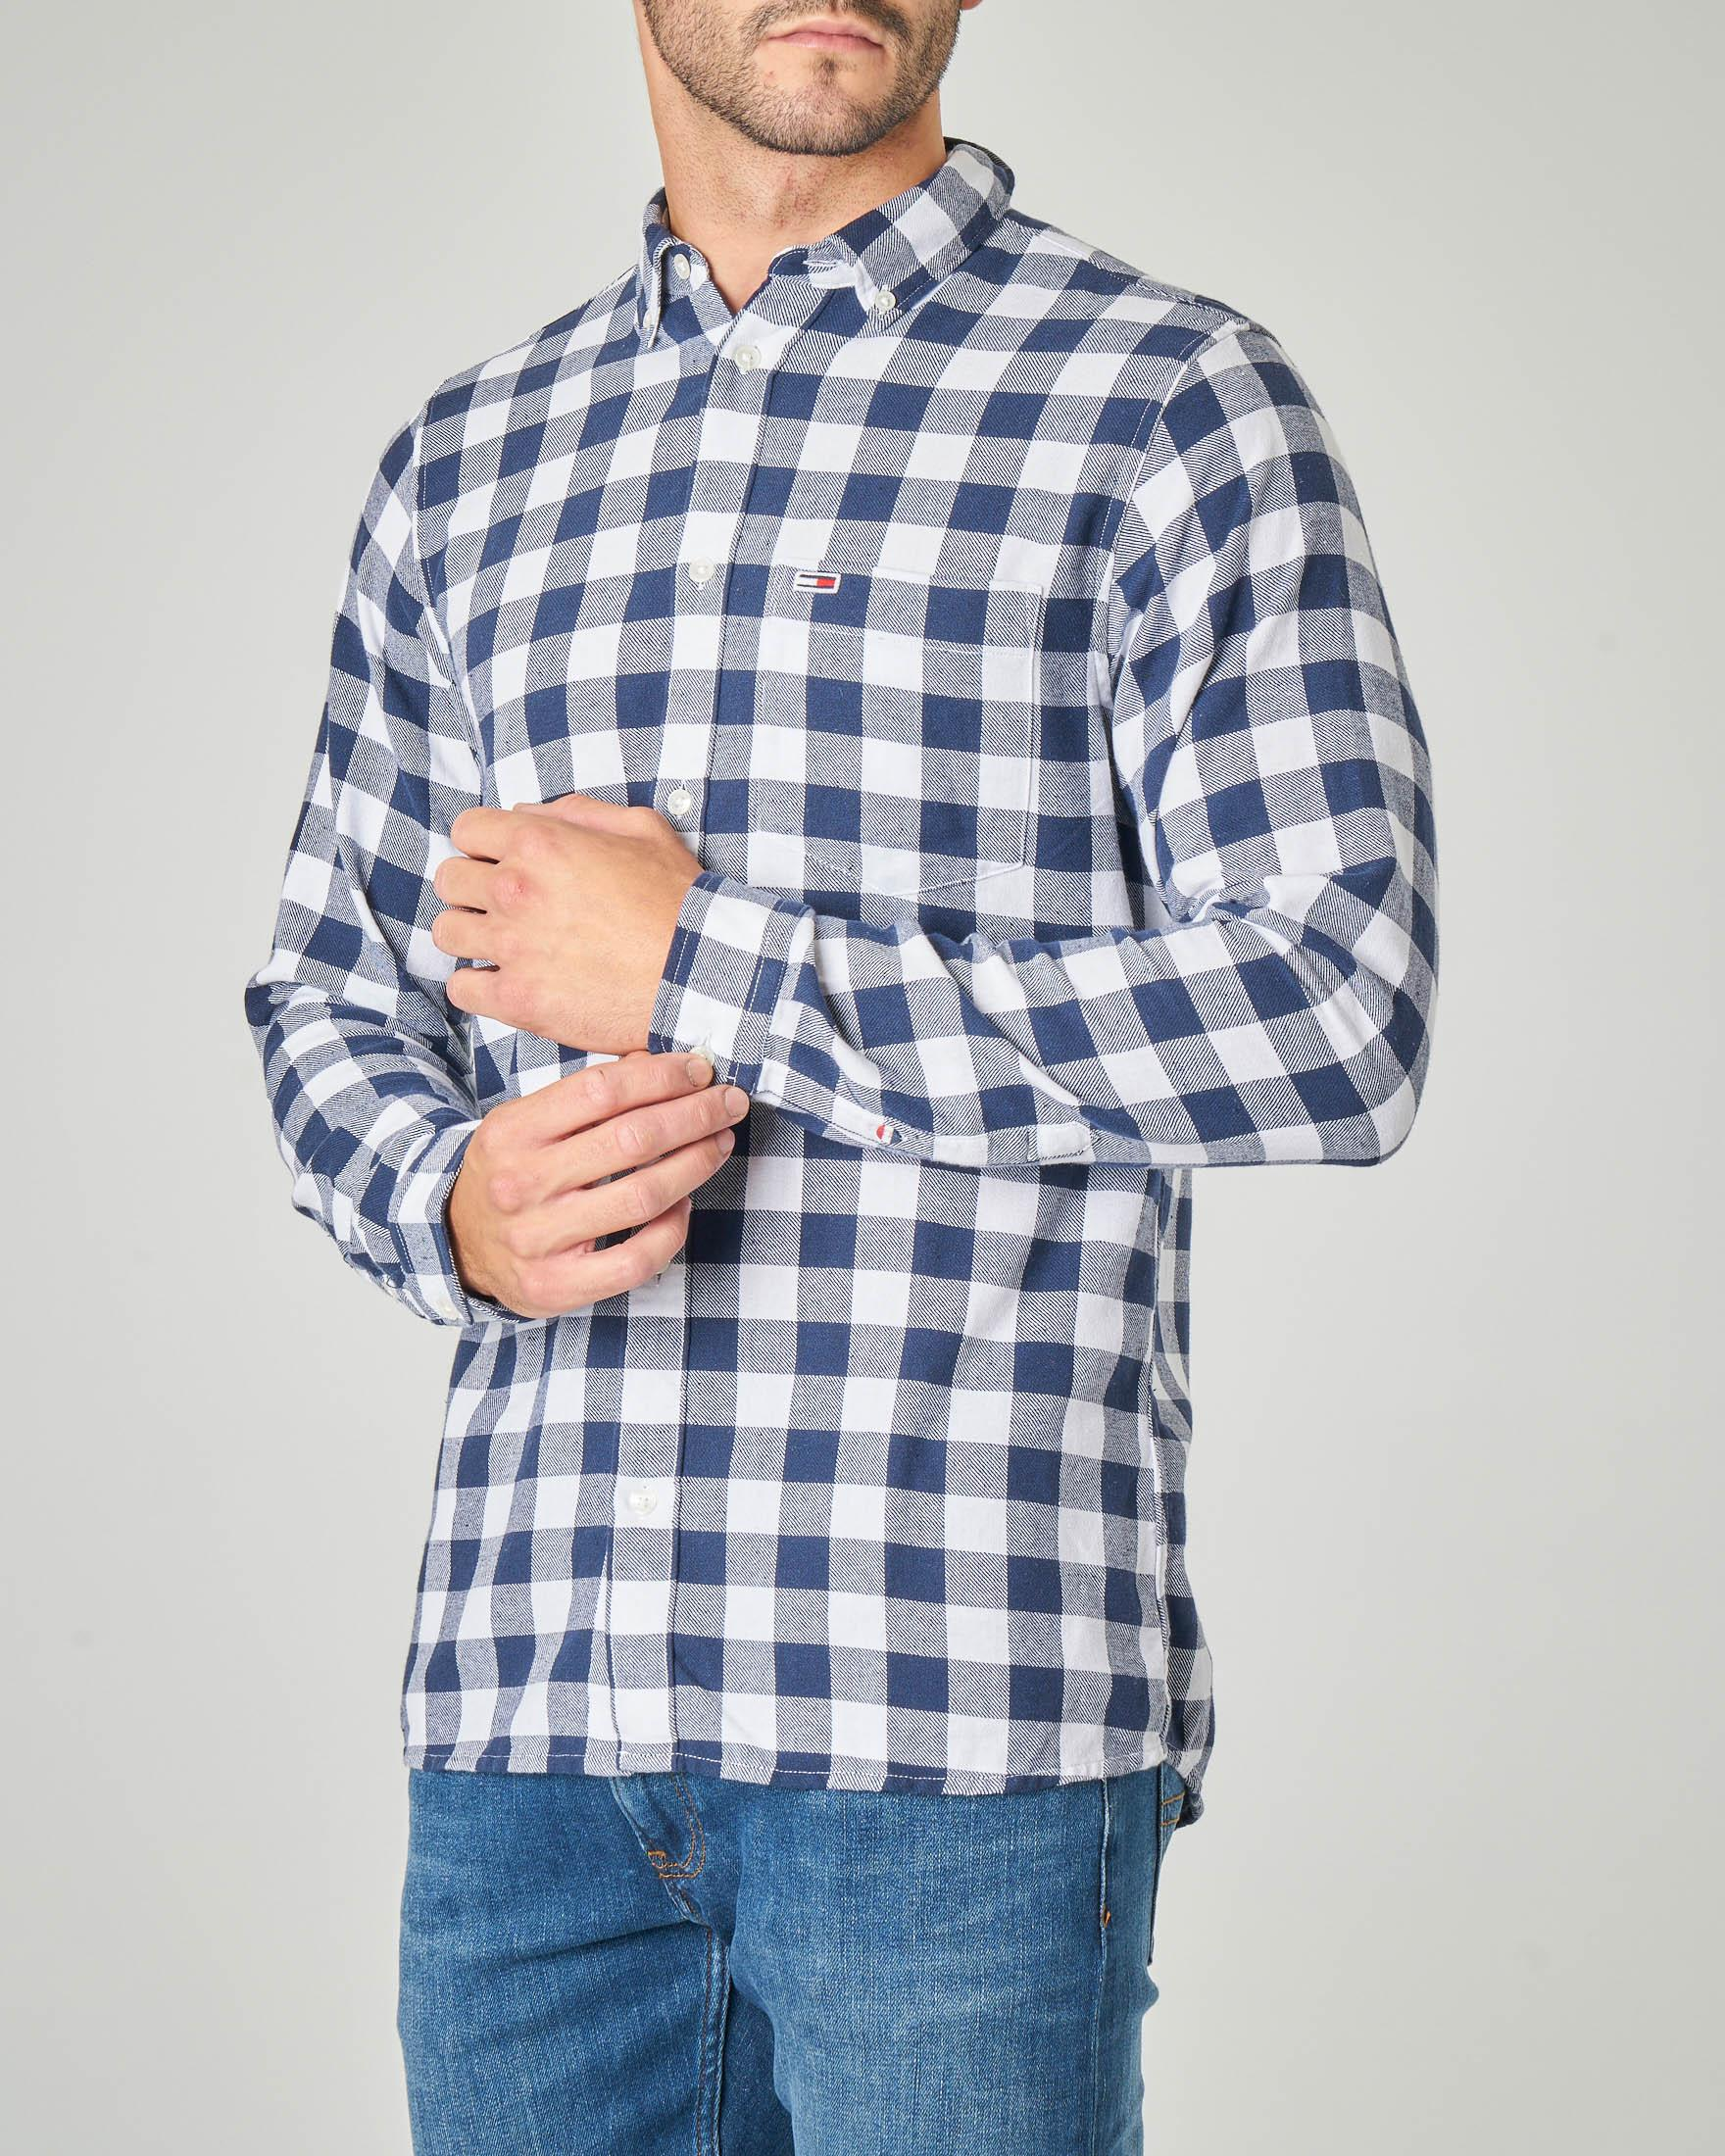 Camicia a quadri blu e bianchi con taschino e collo button down